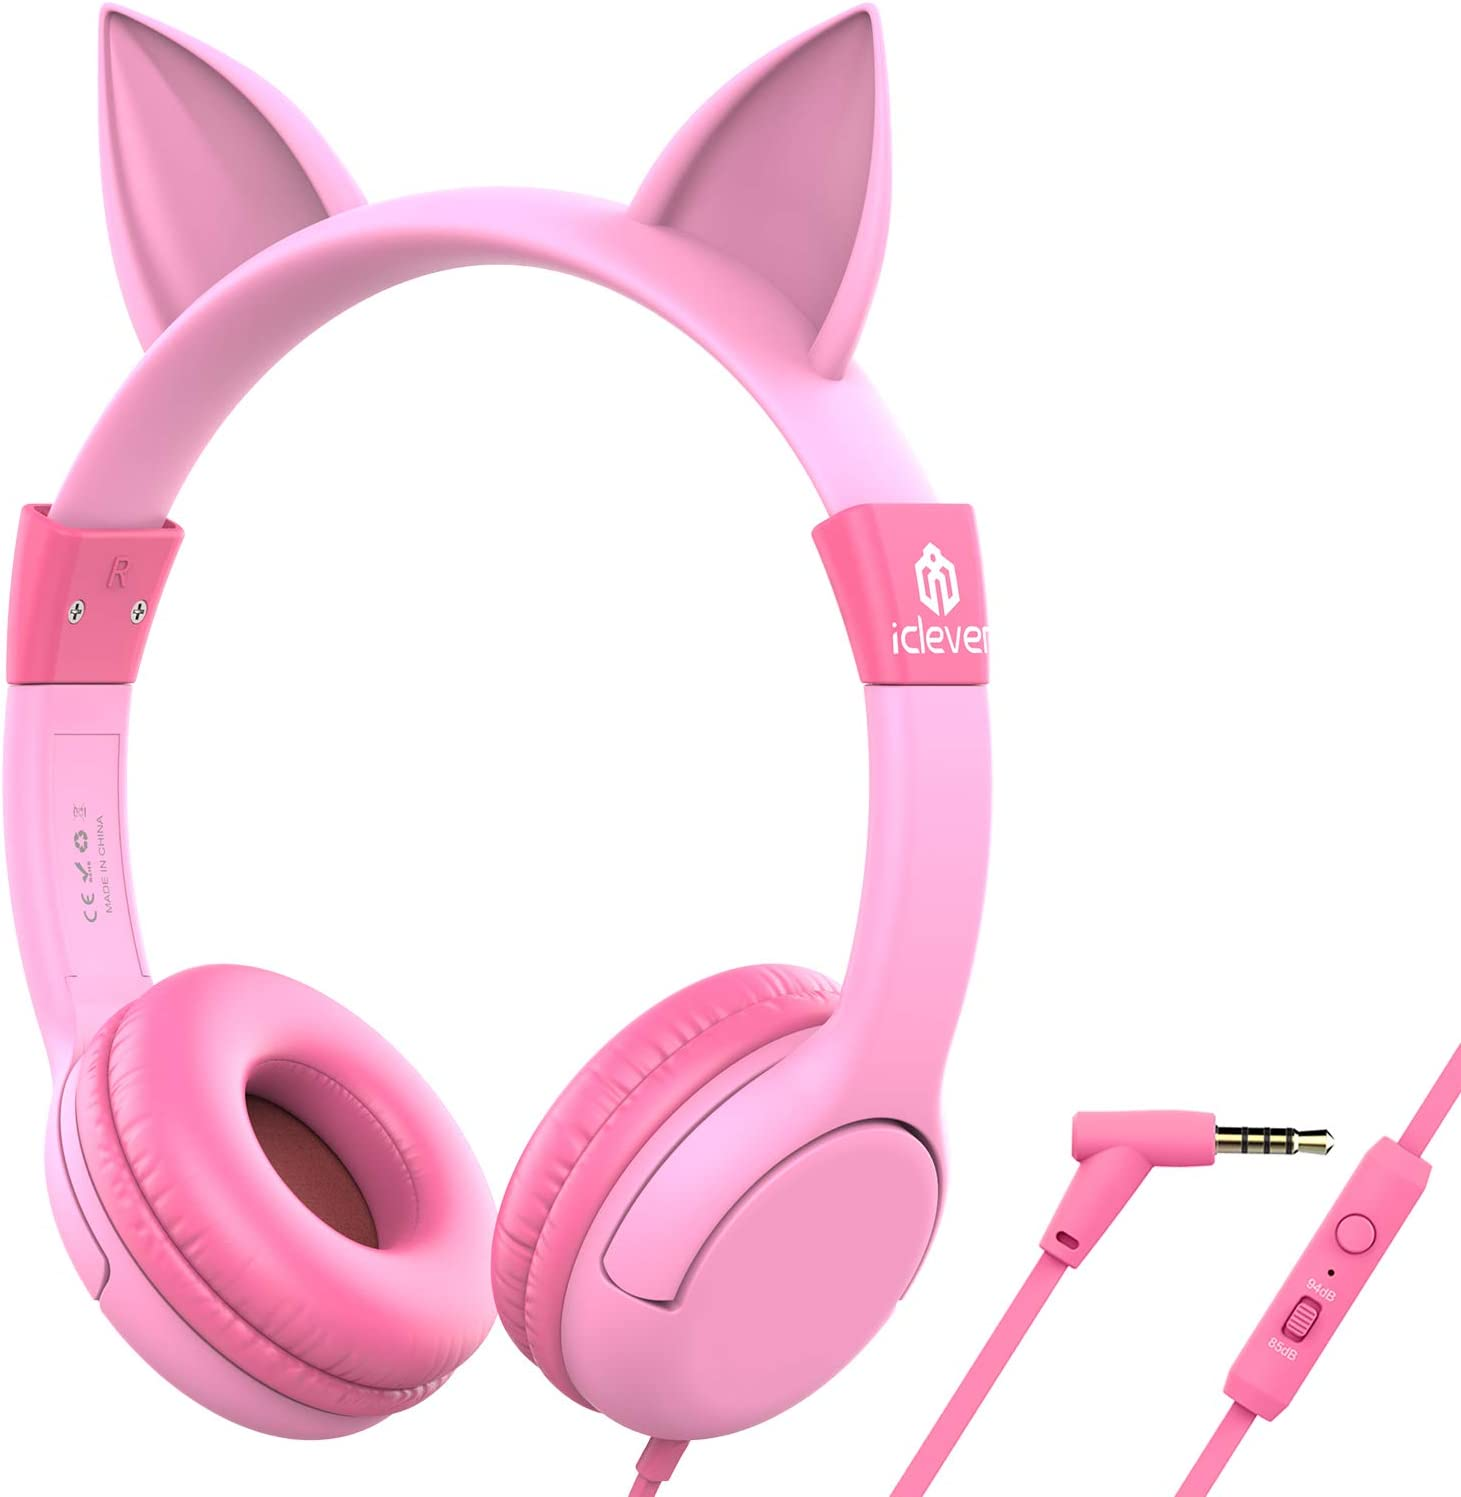 [Upgrade]iClever Boostcare Kids Headphones Girls - Cat Ear Hello Kitty Wired Headphones for Kids on Ear, Adjustable 85/94dB Volume Control - Toddler Headphones with MIC for School Tablet, Pink